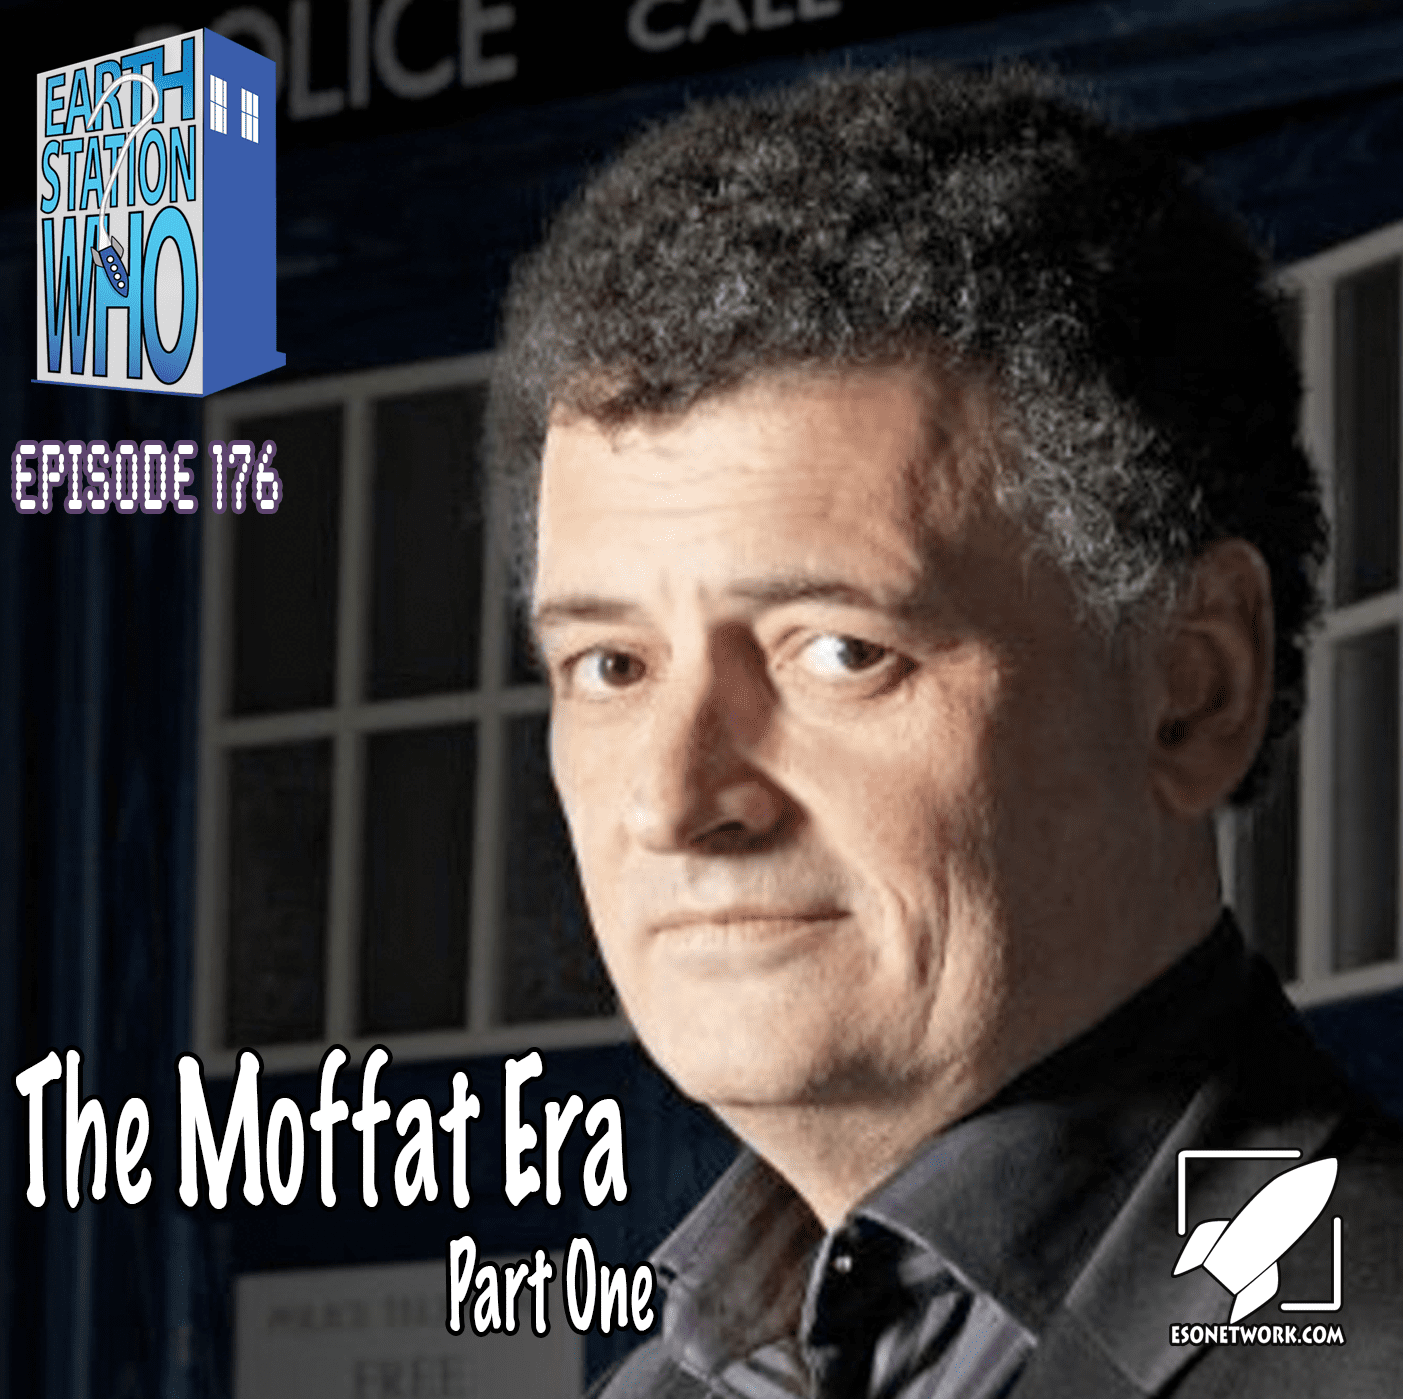 Earth Station Who Podcast Ep 176 - The Moffat era pt 1